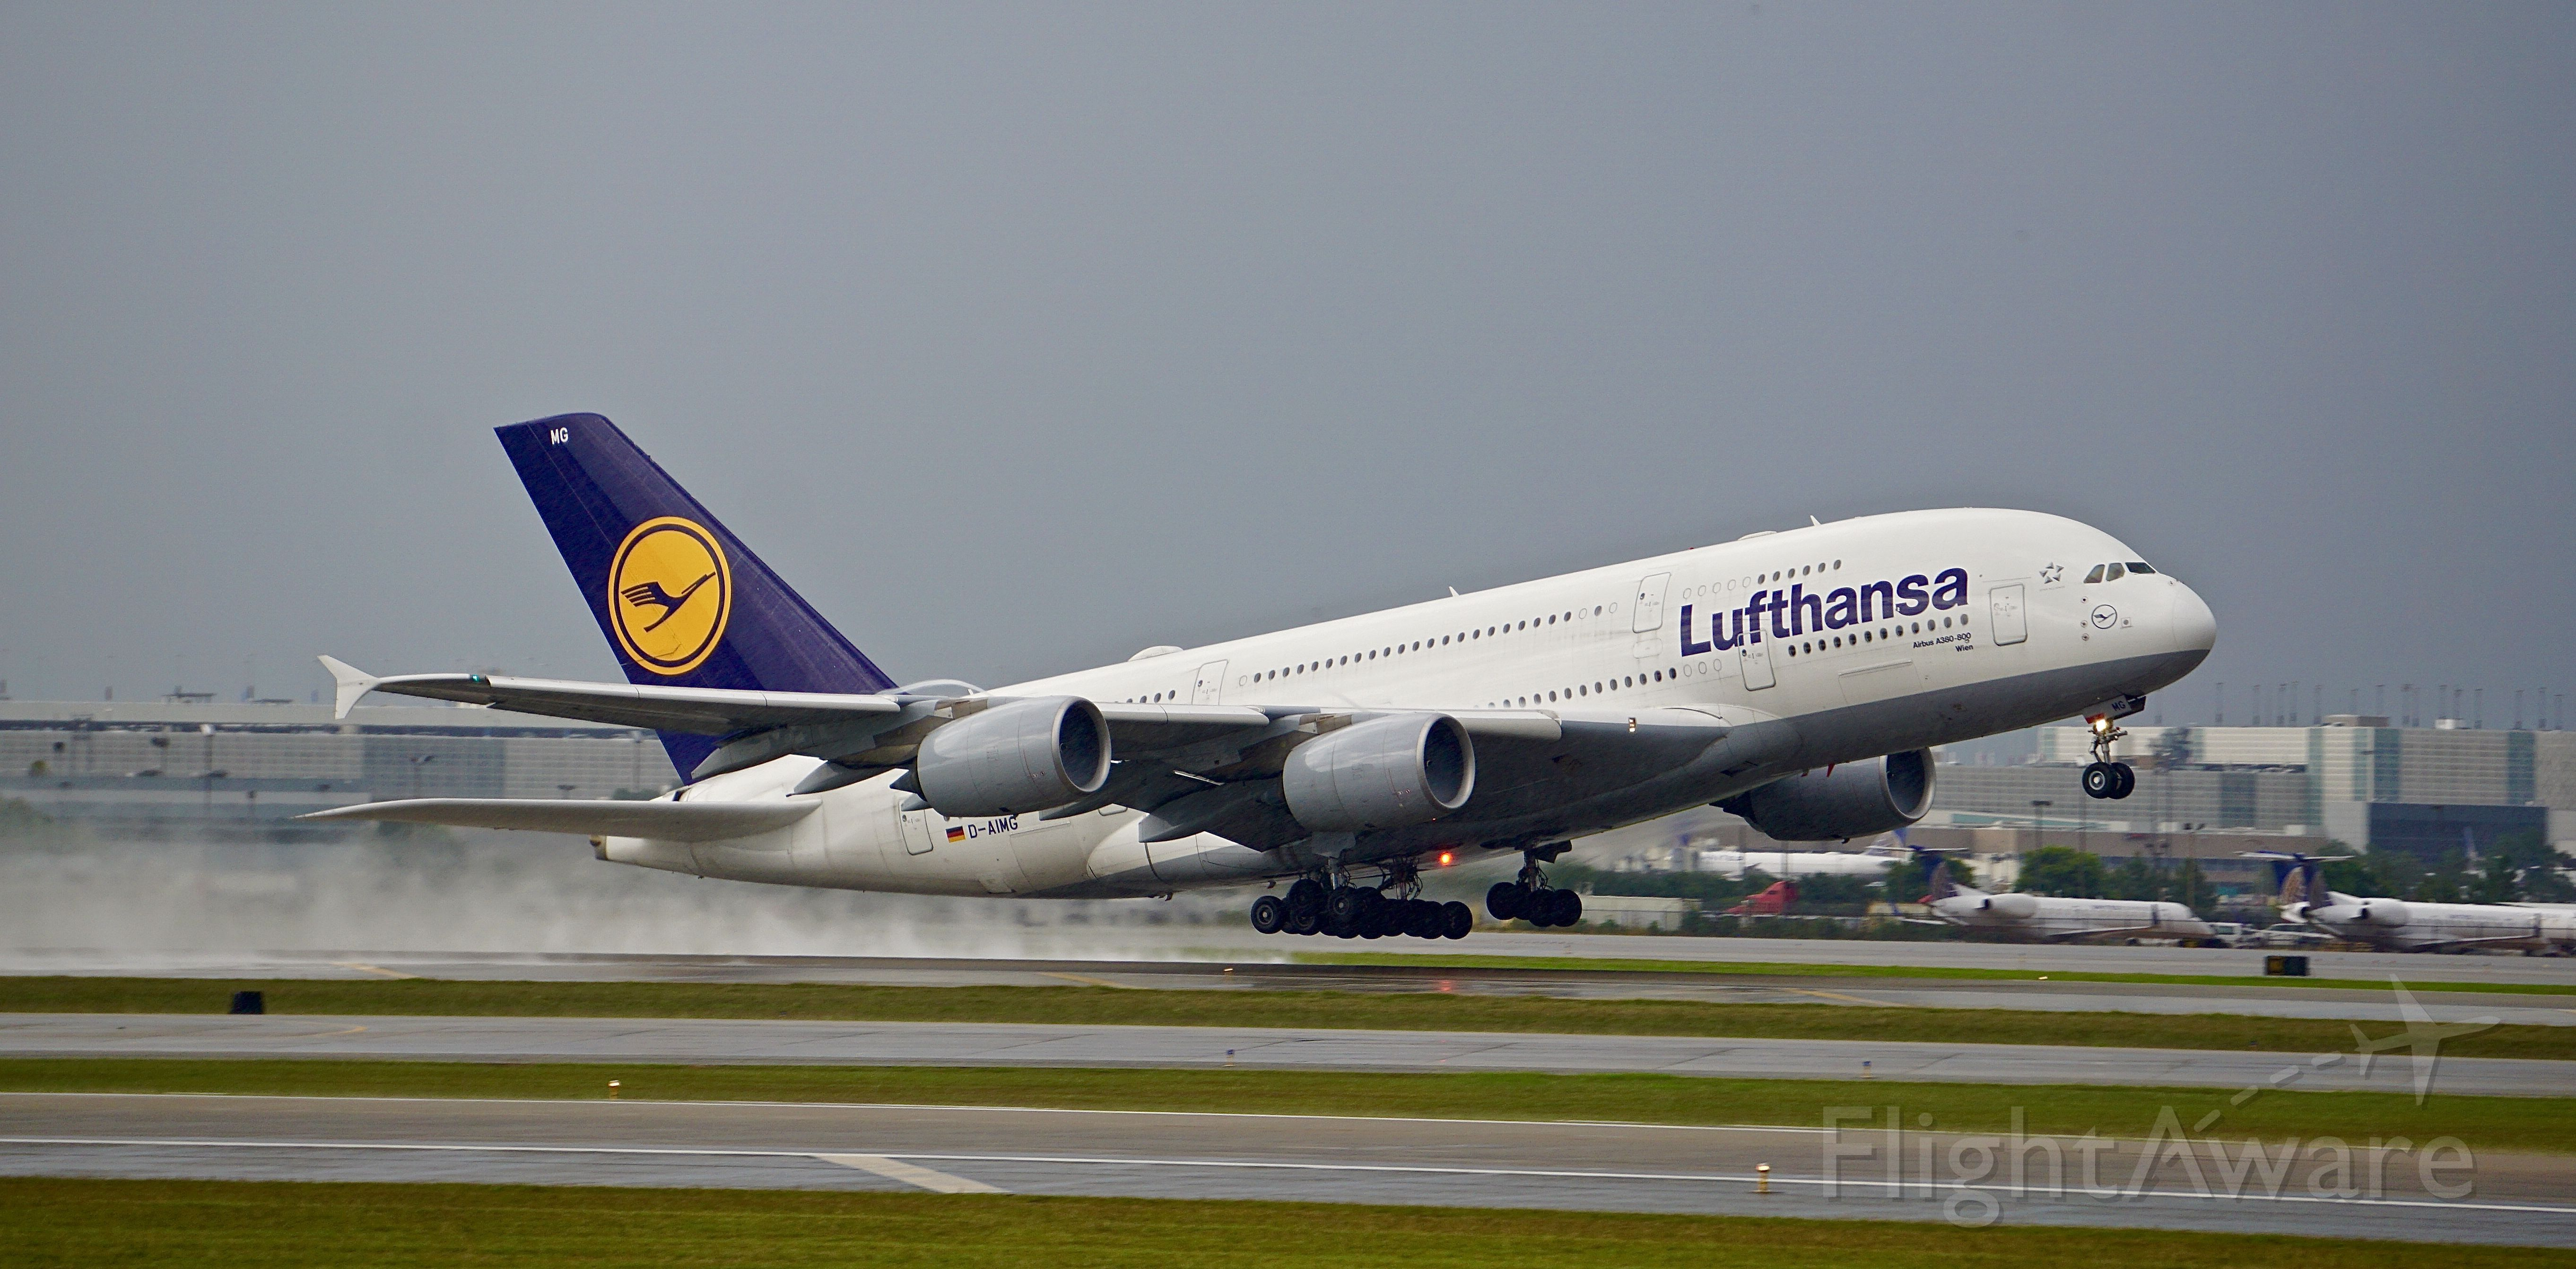 Airbus A380-800 (D-AIMG) - LH441 departing for Frankfurt on a dismal day in Houston.